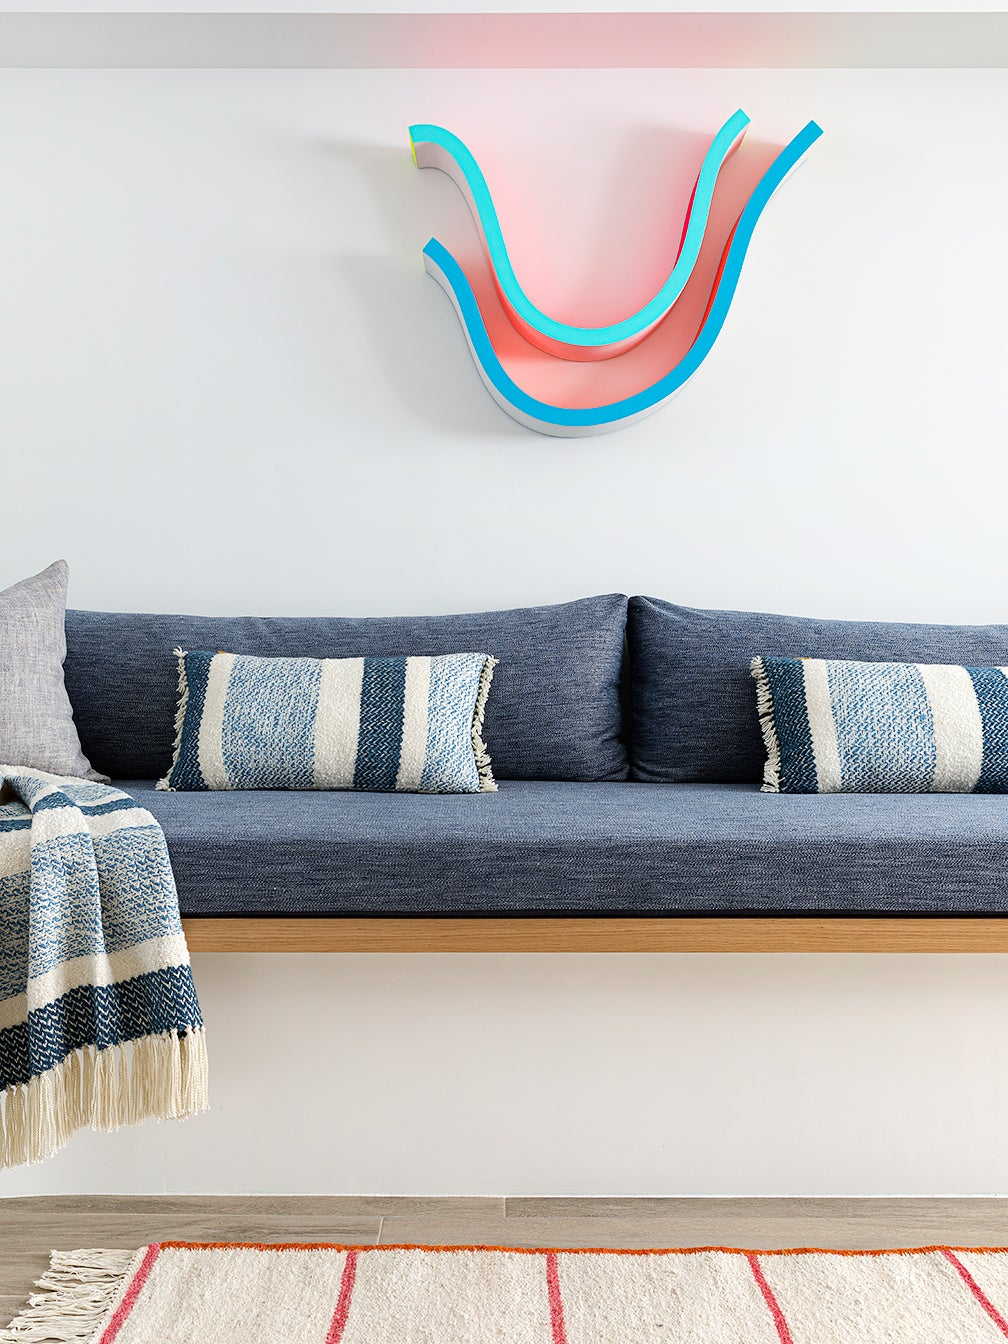 A Cool Wavy Sofa Actually Conceals Ductwork in This Family's Brownstone Basement